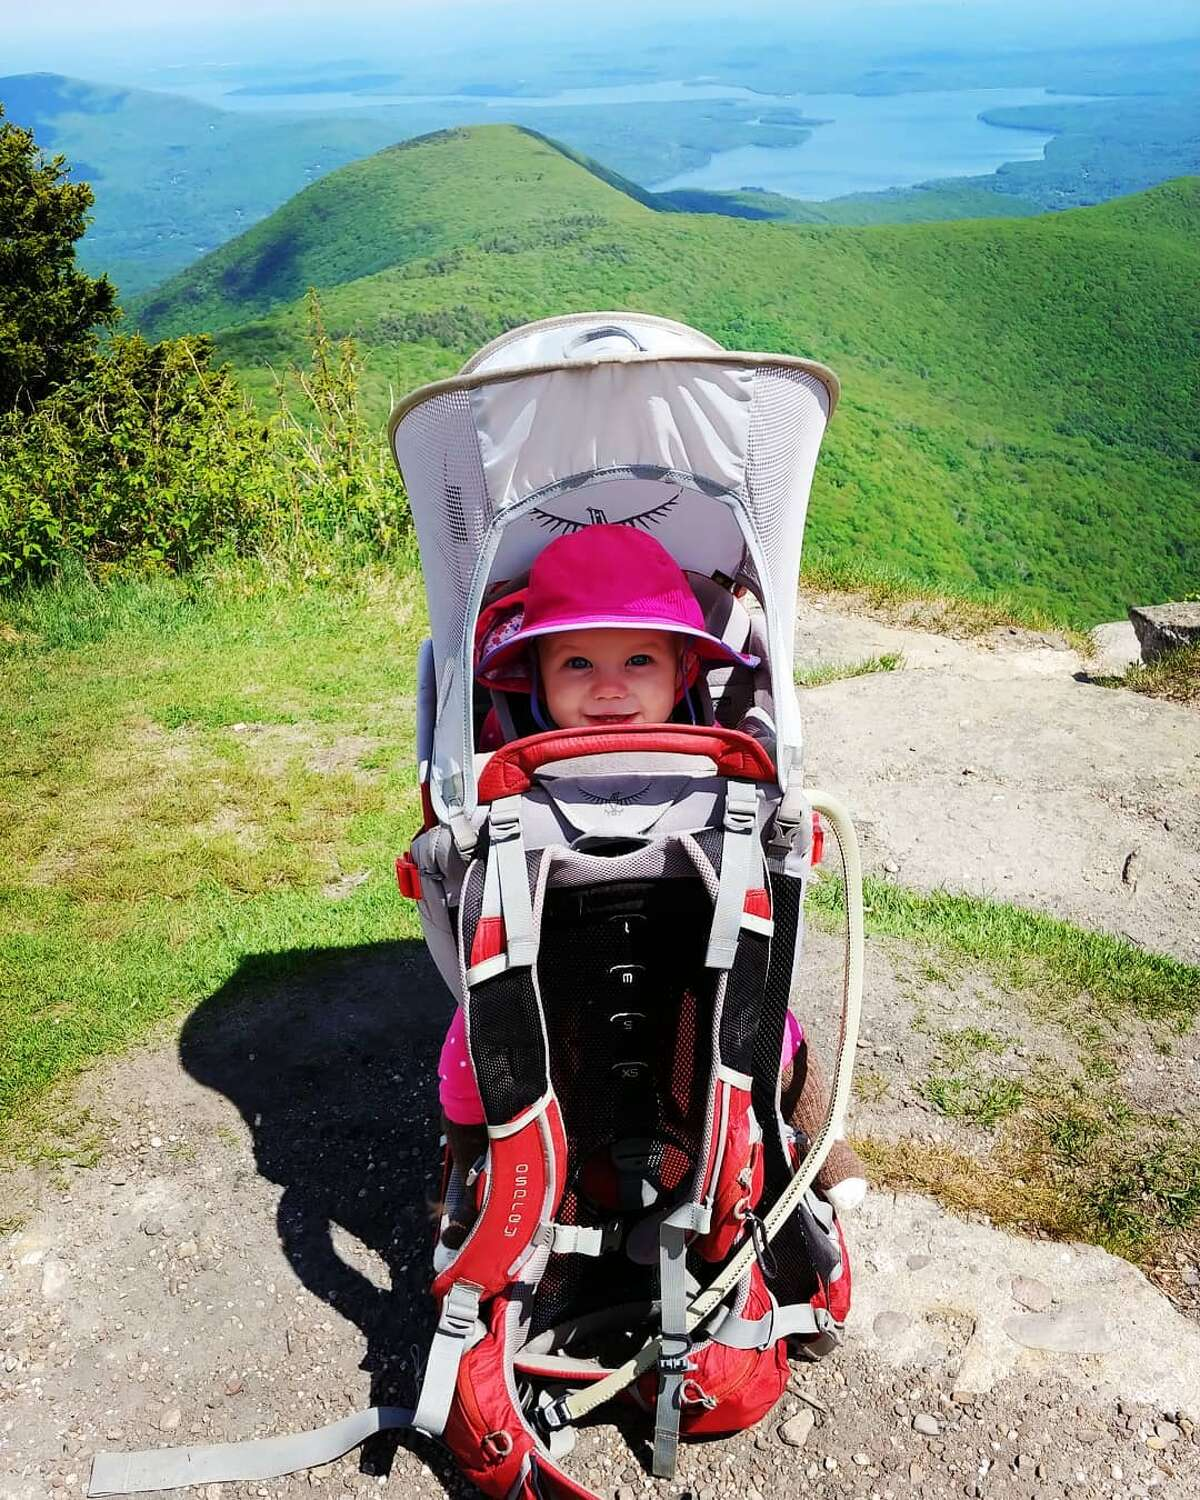 Kralick carried her baby on her front in acarrier until she was 6 months old. Then she graduated to an Osprey Poco Plus Backpack Carrier, with lots of storage, a sun shade/rain cover system, and a robust structure for her safety. On overnight trips the baby has her own foldable tent for her safe sleeping inside their larger tent and a zip-on sleeping bag. She generally wears one layer more than the family since she isn't moving. Photo: @mountainmama_amk